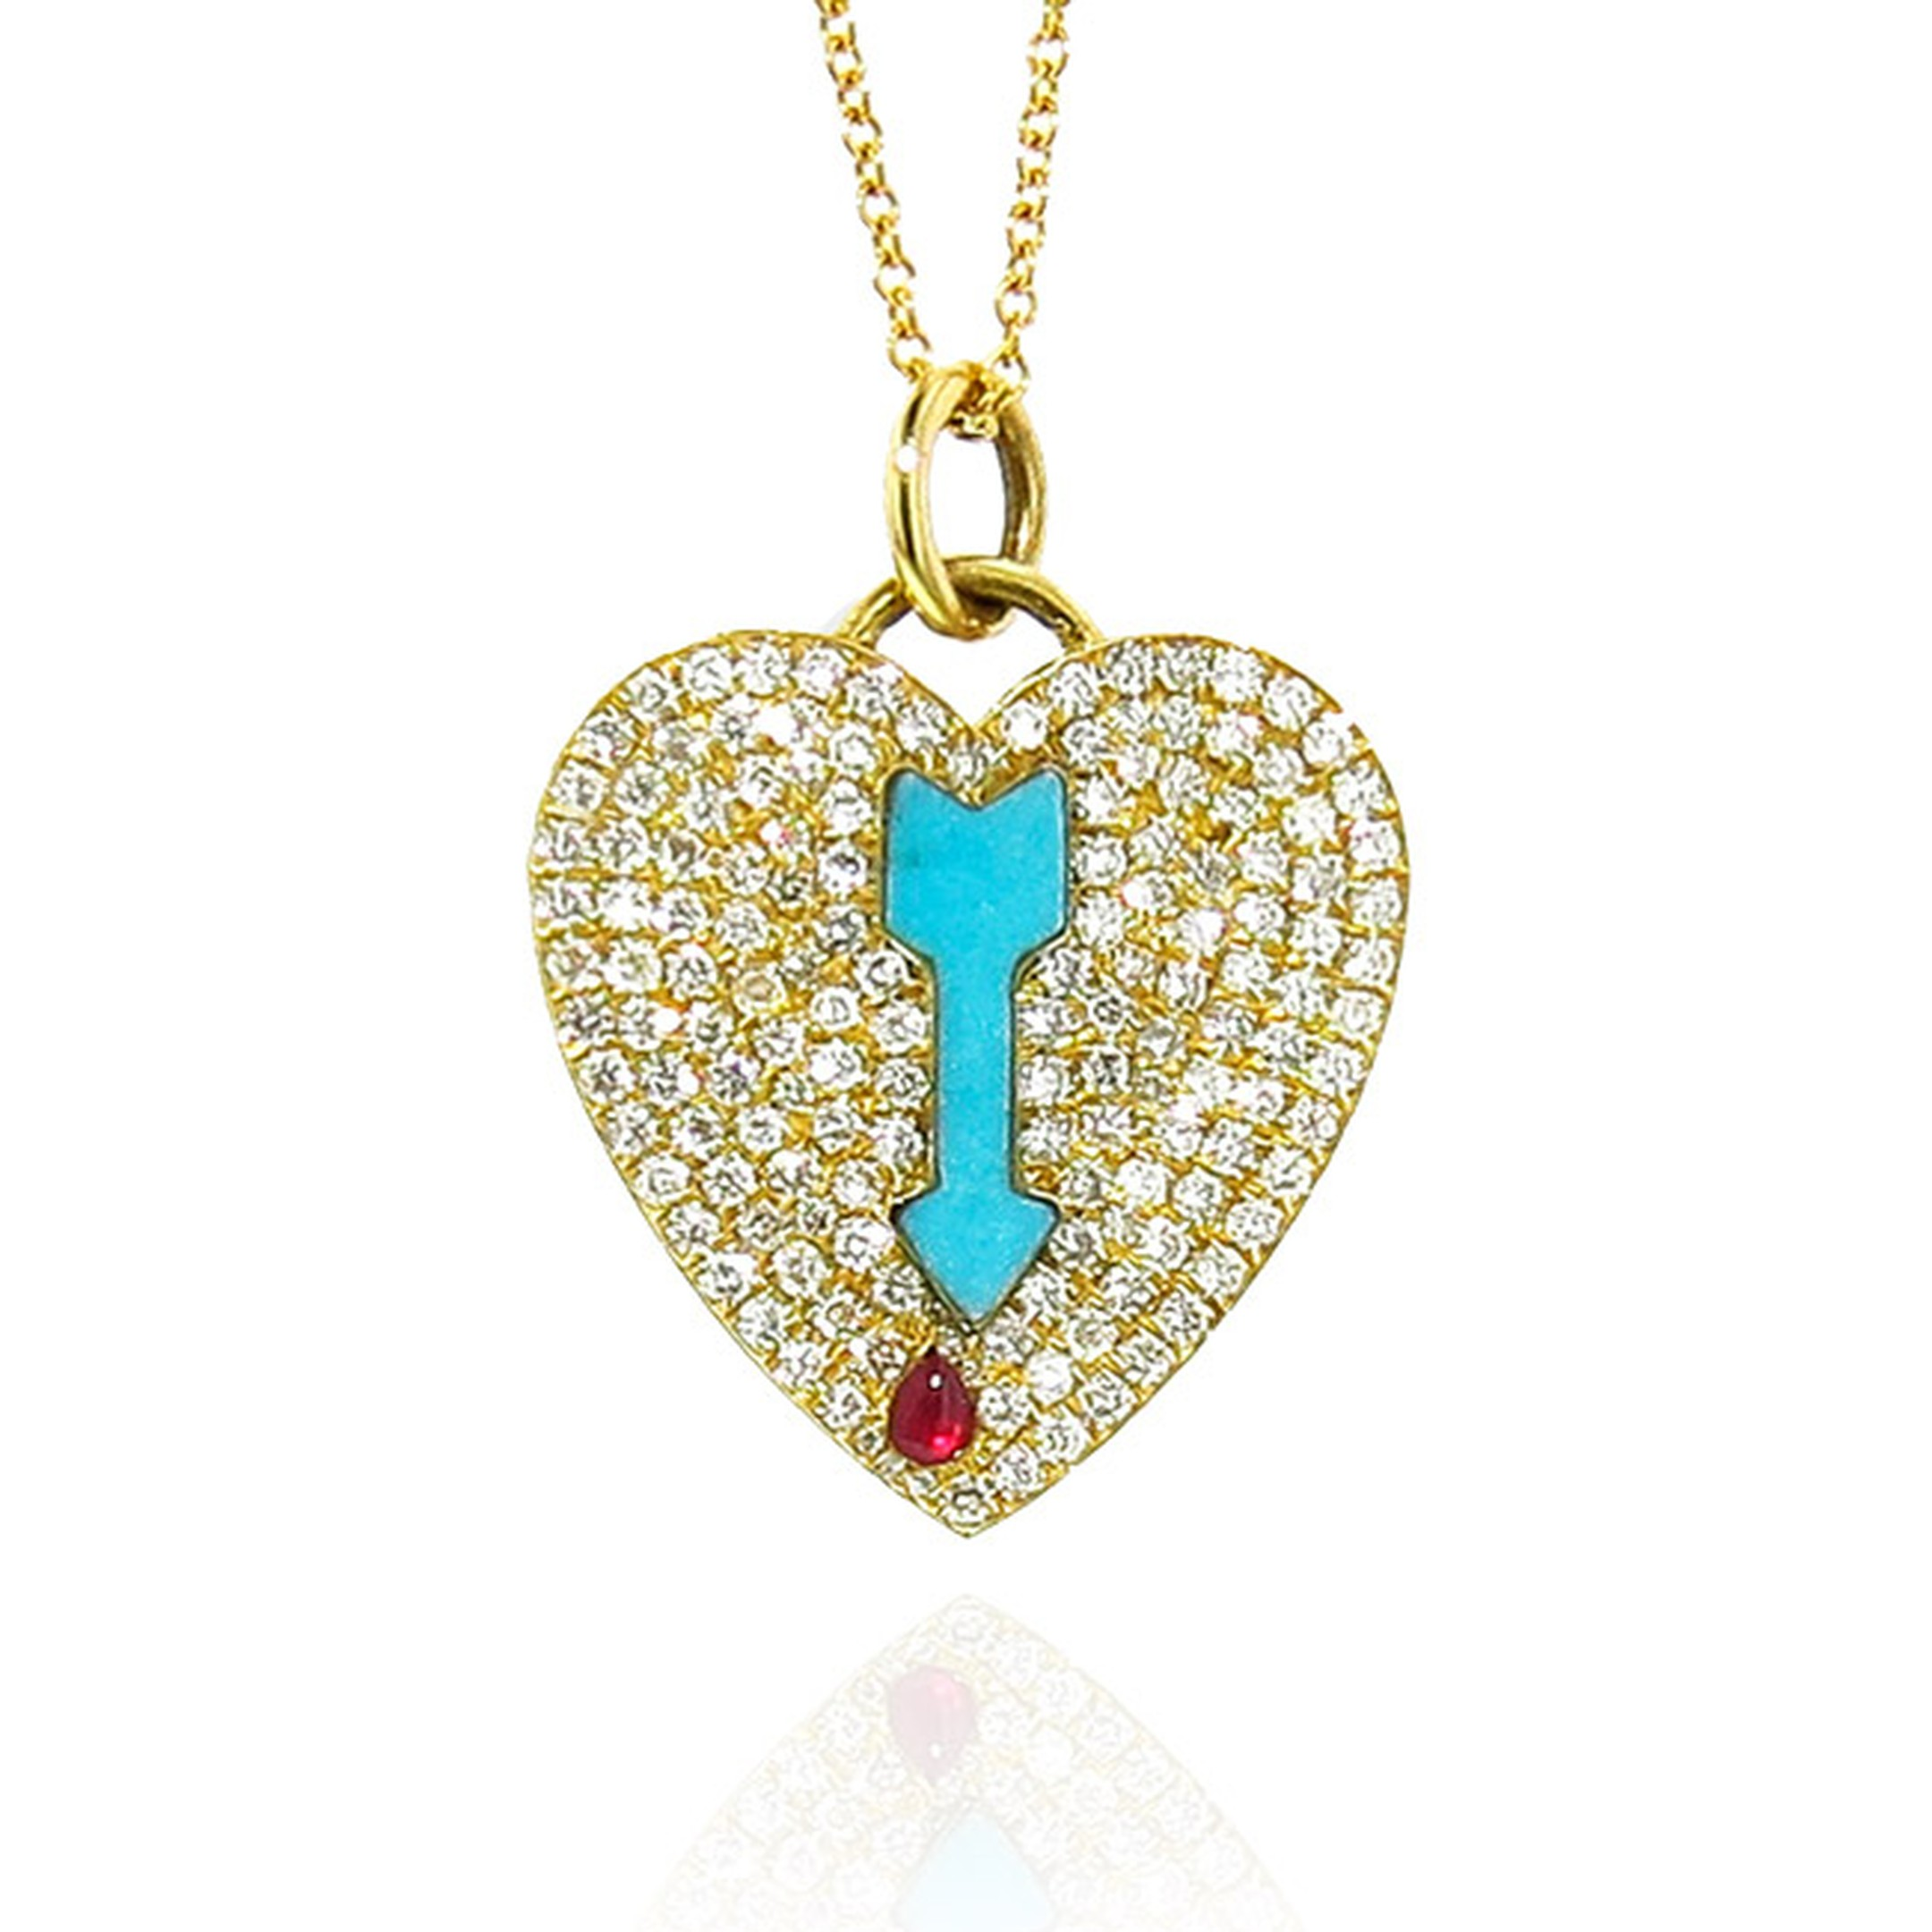 JMeyers-Heart-Necklace-Main